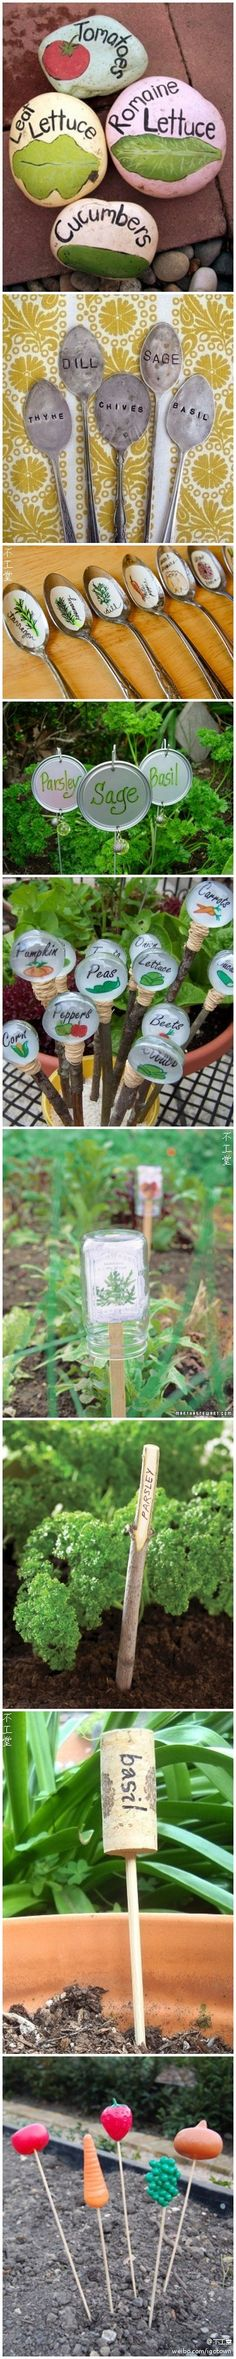 How to keep track of what is in your garden.